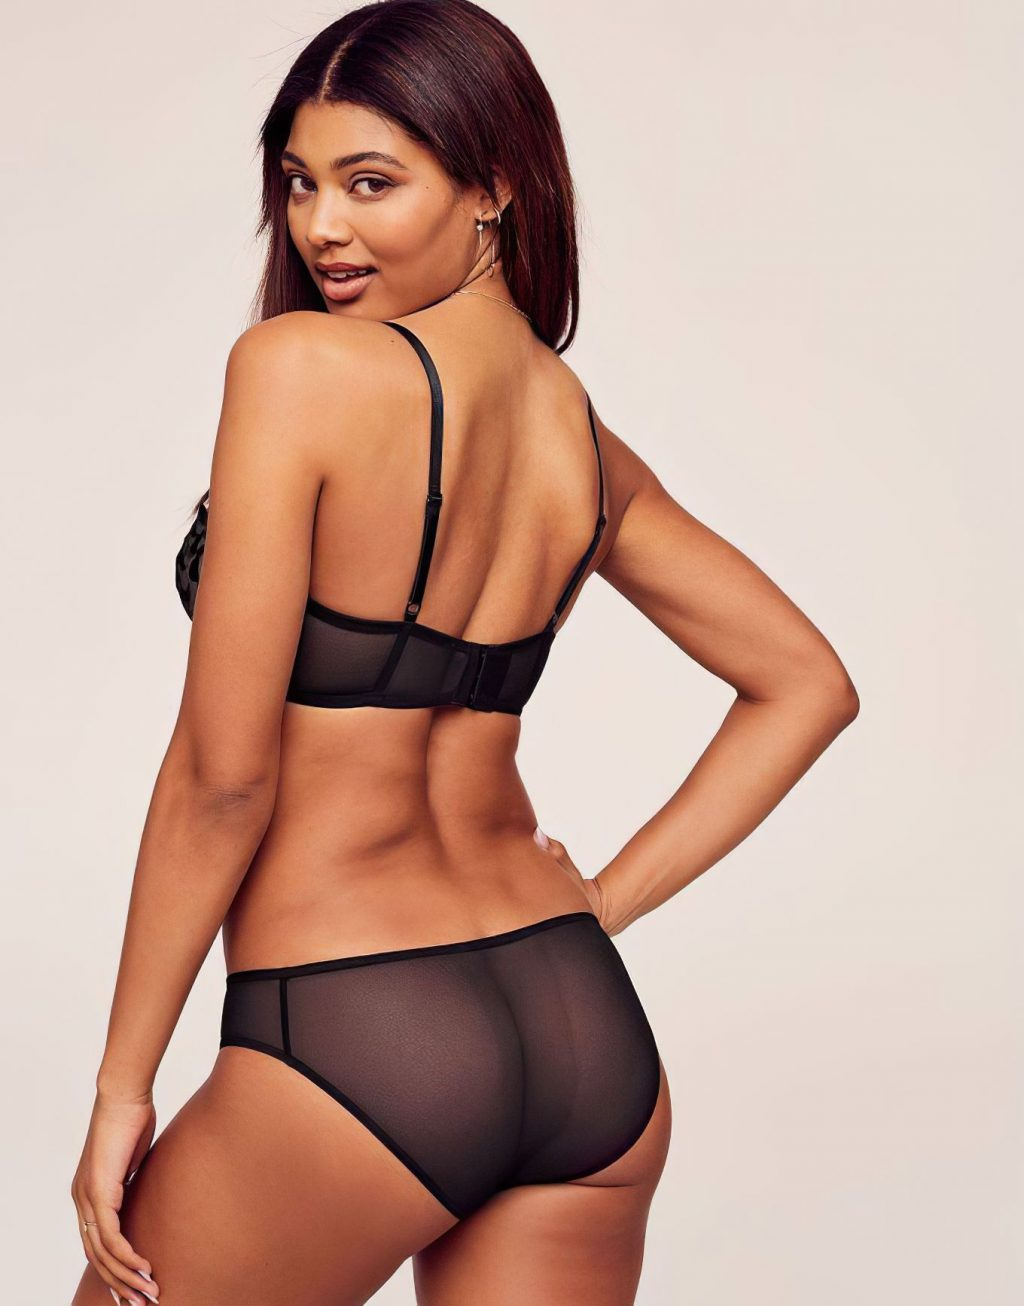 Danielle Herrington Erotic